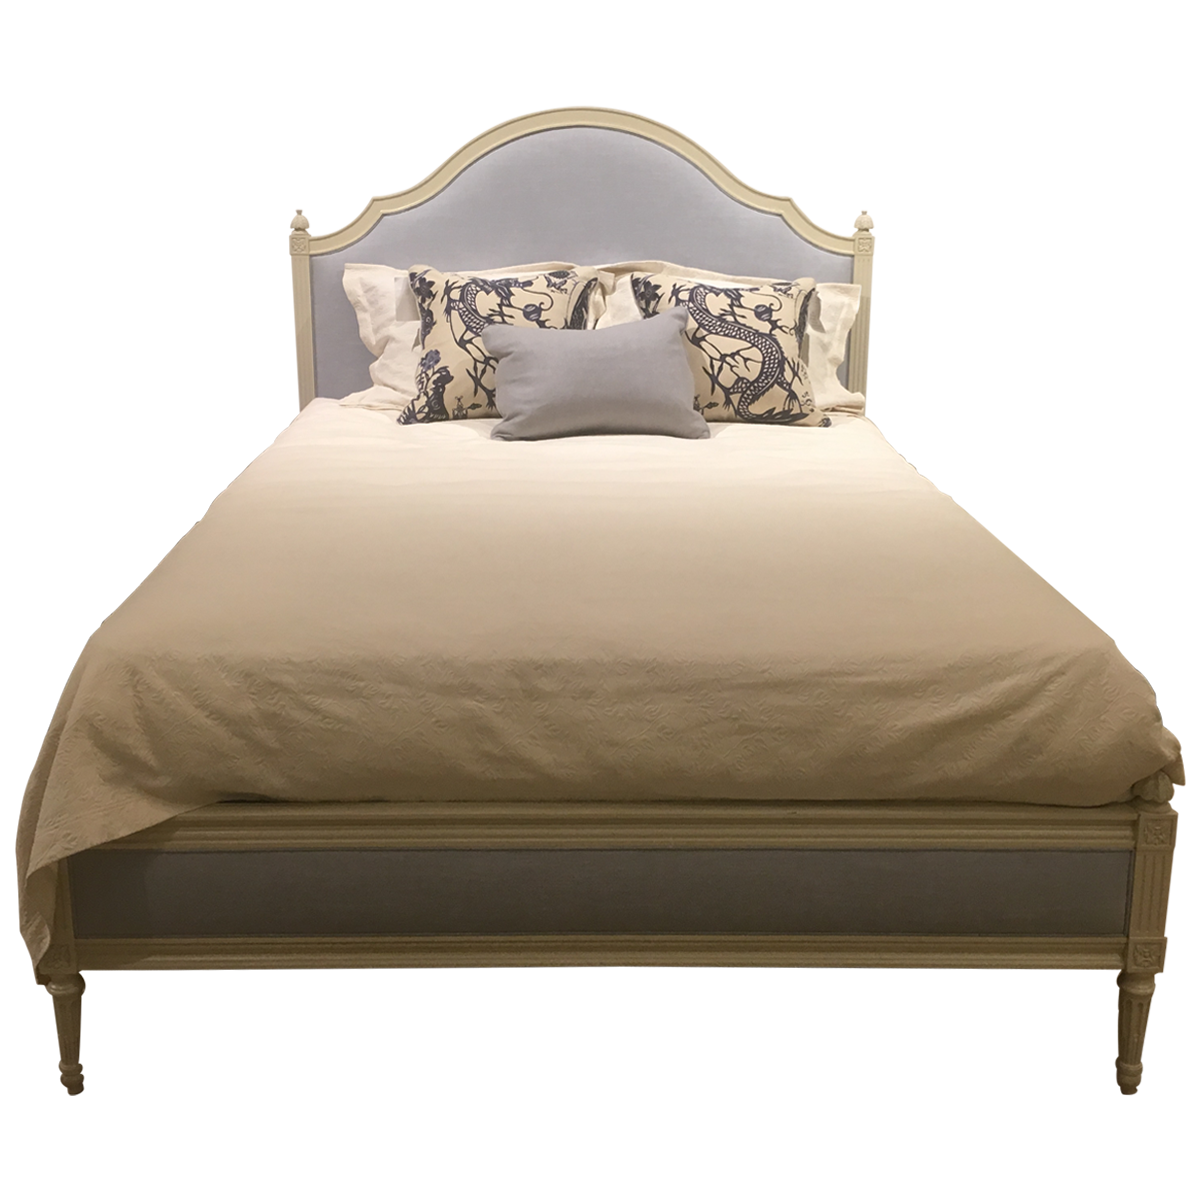 Bed HD PNG Transparent Bed HD.PNG Images. | PlusPNG